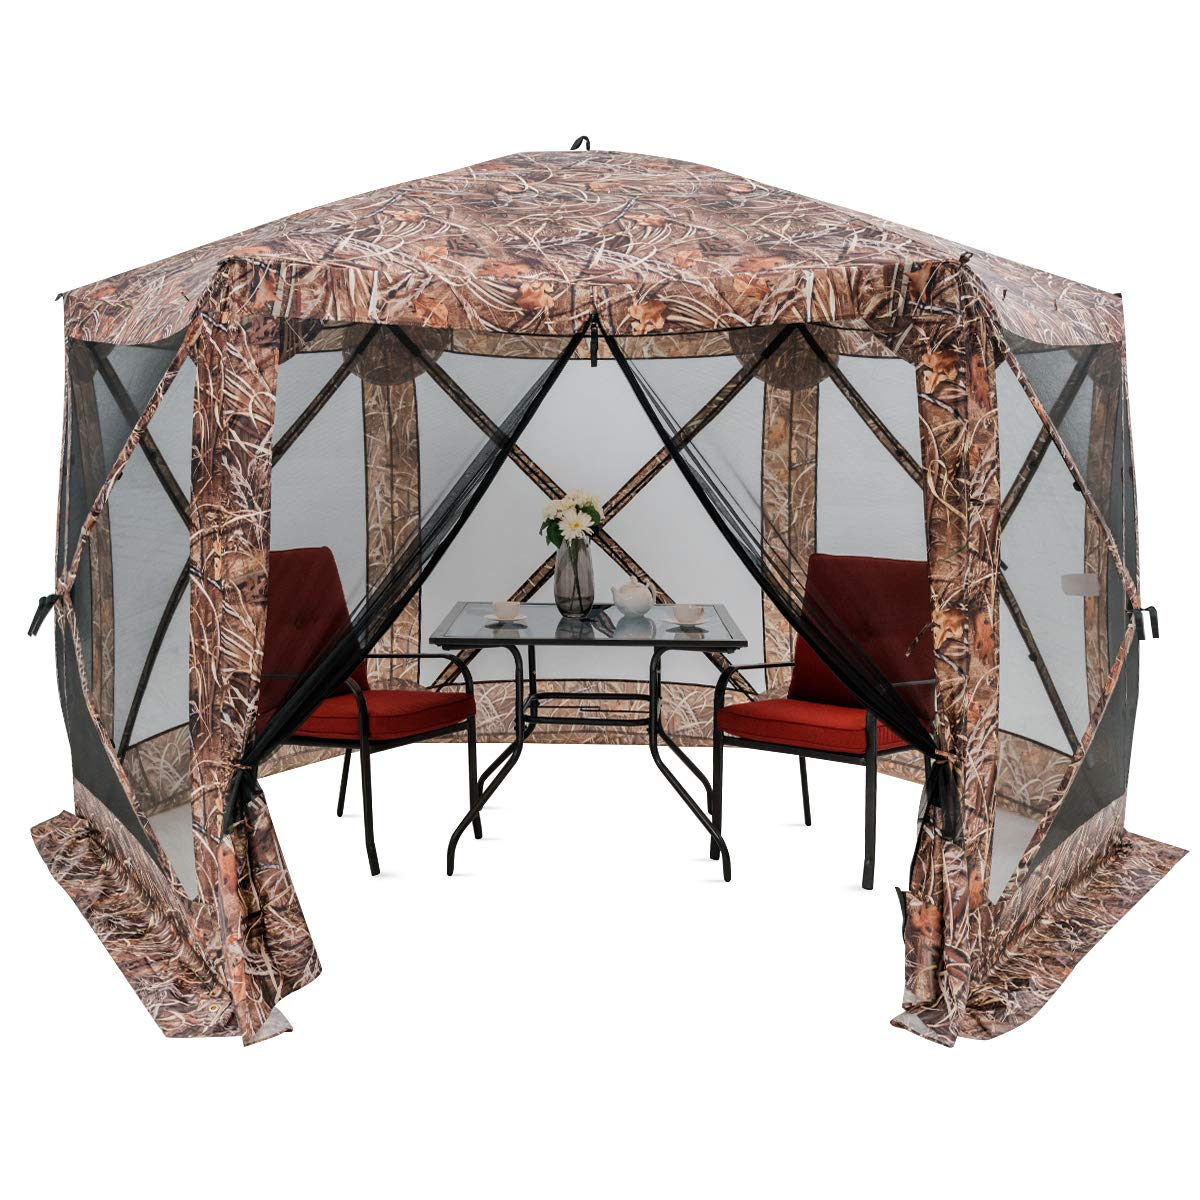 HAPPYGRILL 140 x 140 Outdoor Patio Canopy Portable Pop up Gazebo, Large Screen Tent Bug Rain Protection, Camouflage